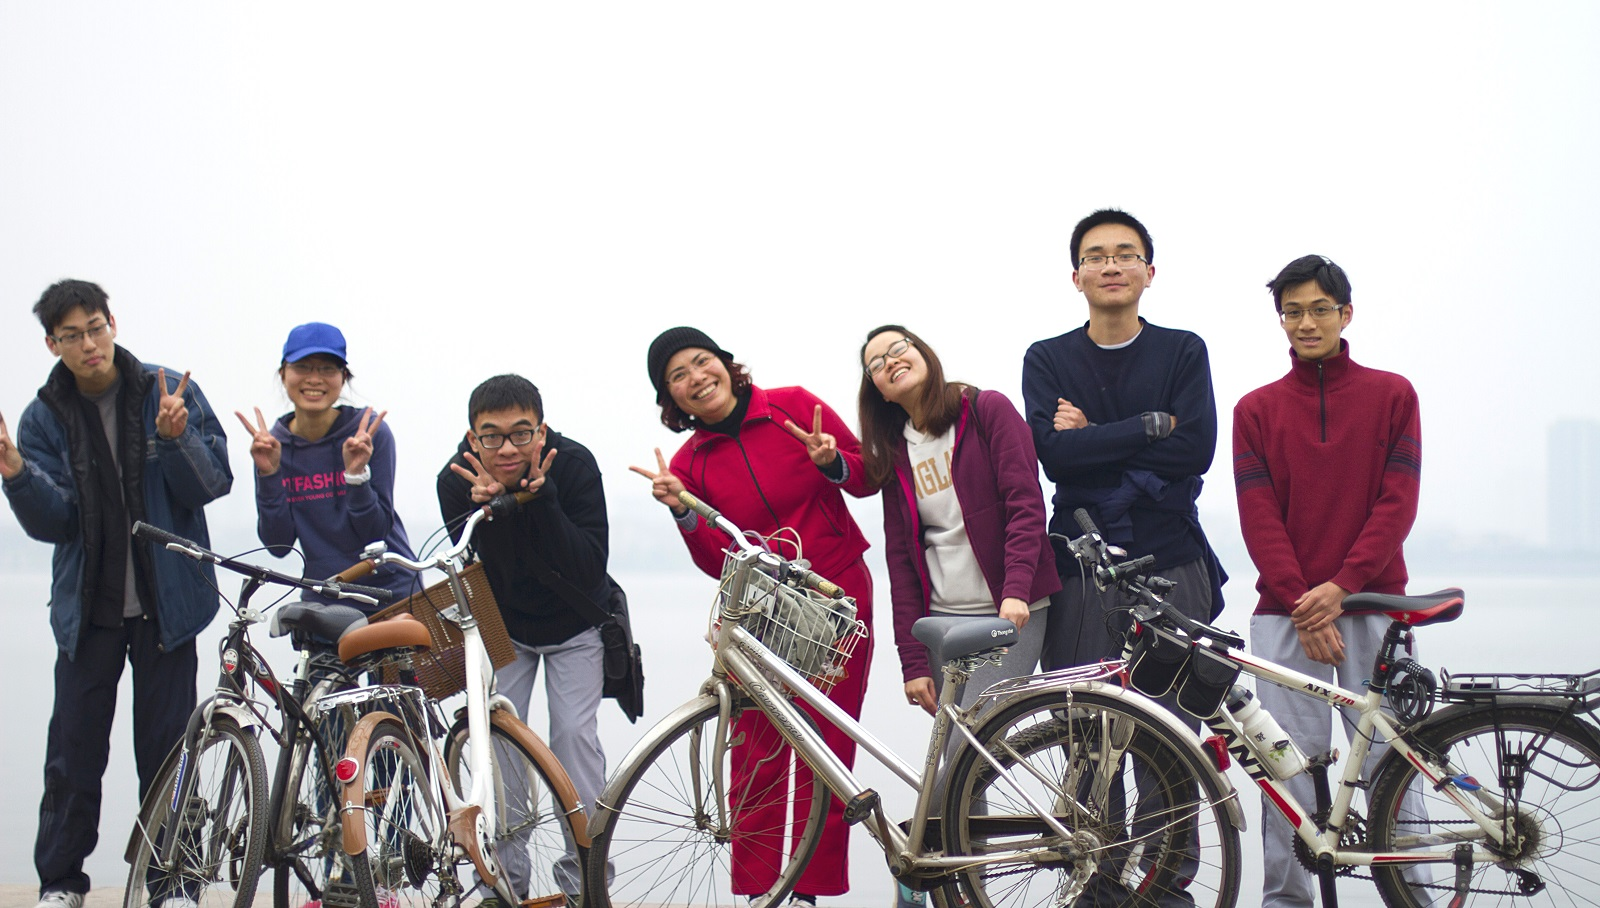 Saturday Cycling with a lot of fun and laugh